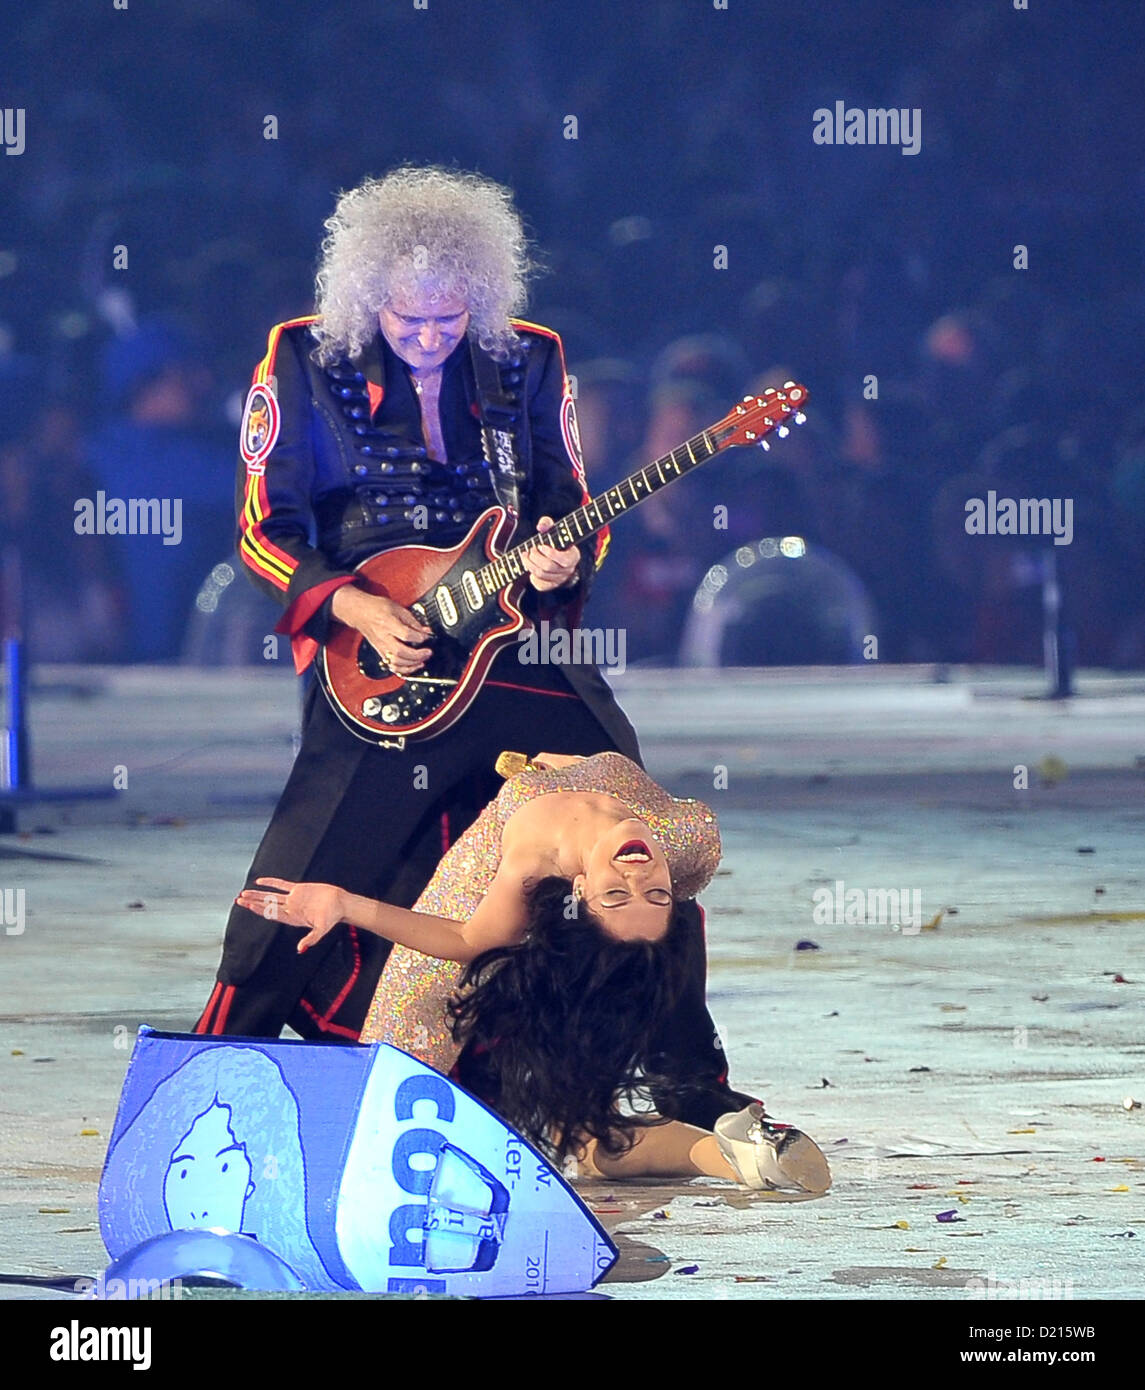 Queen with Jessie J. Closing Ceremony - Stock Image